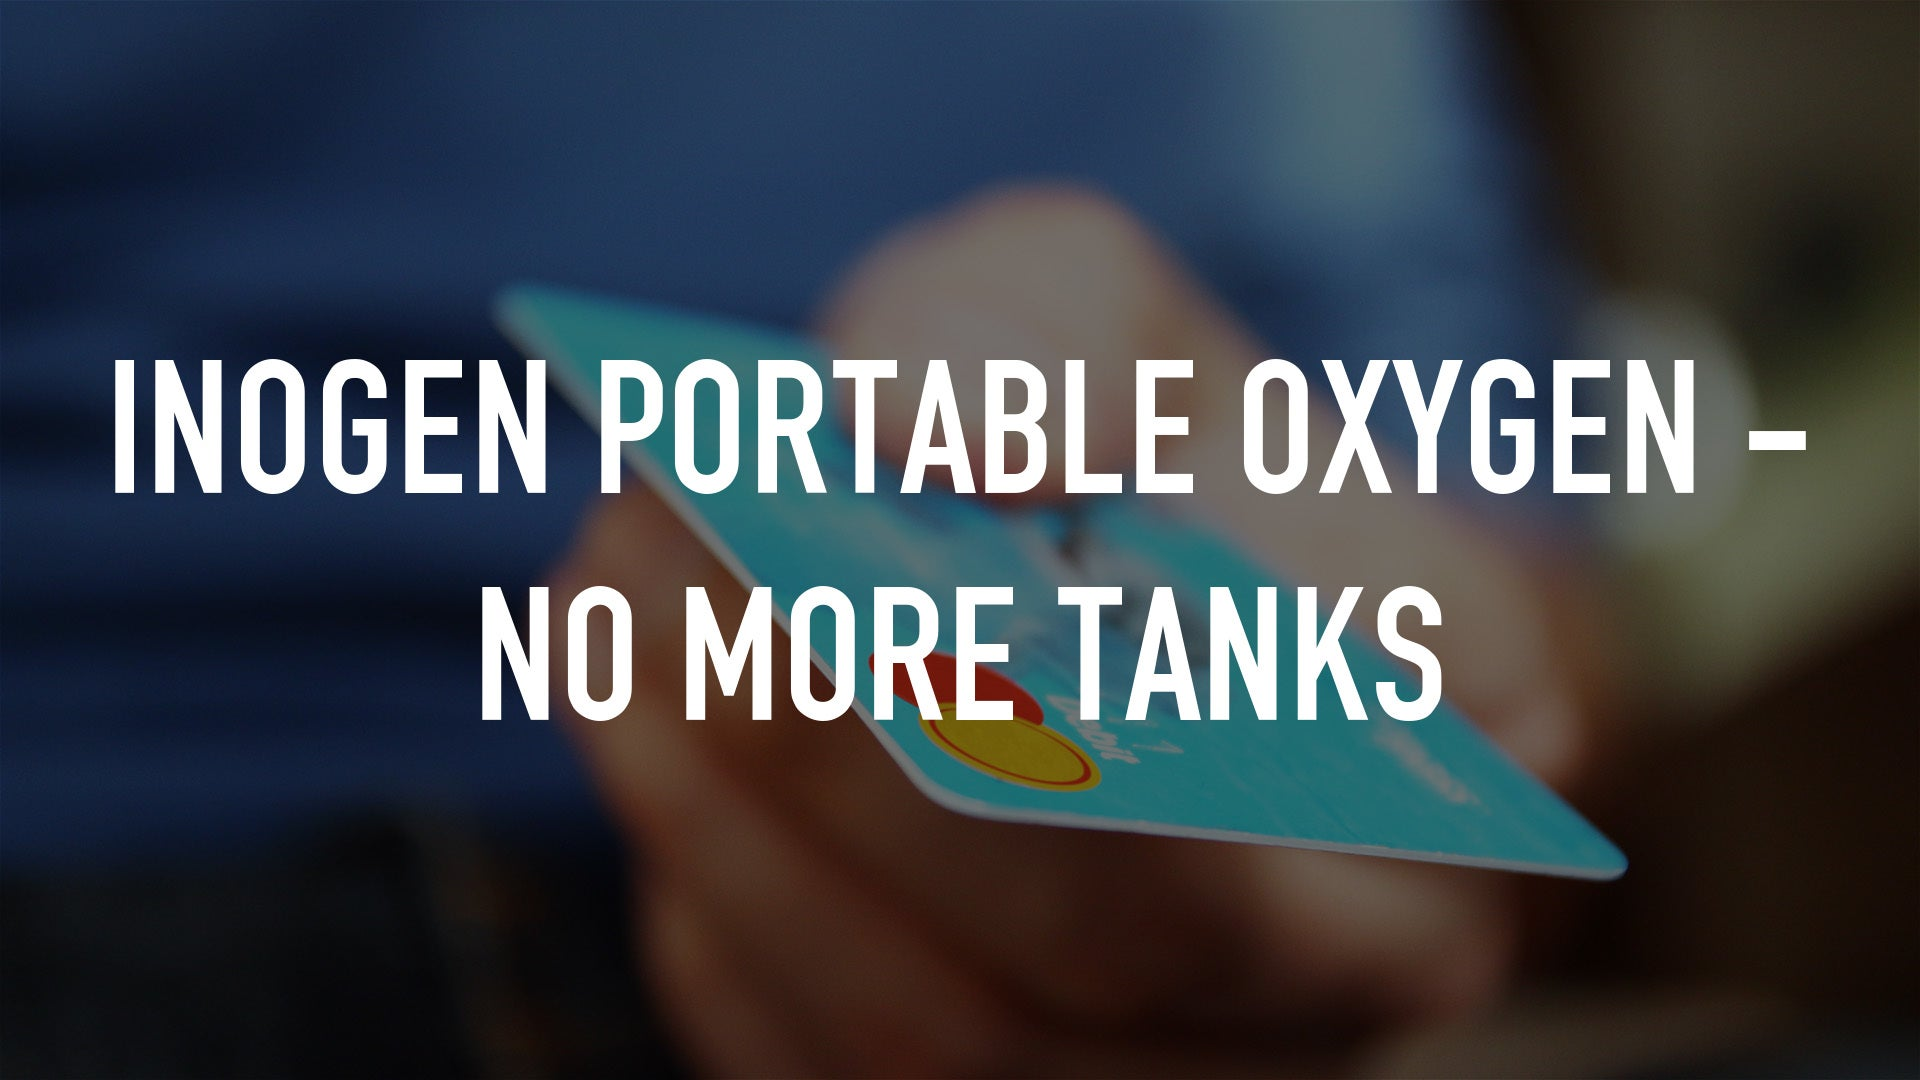 Inogen Portable Oxygen - No More Tanks